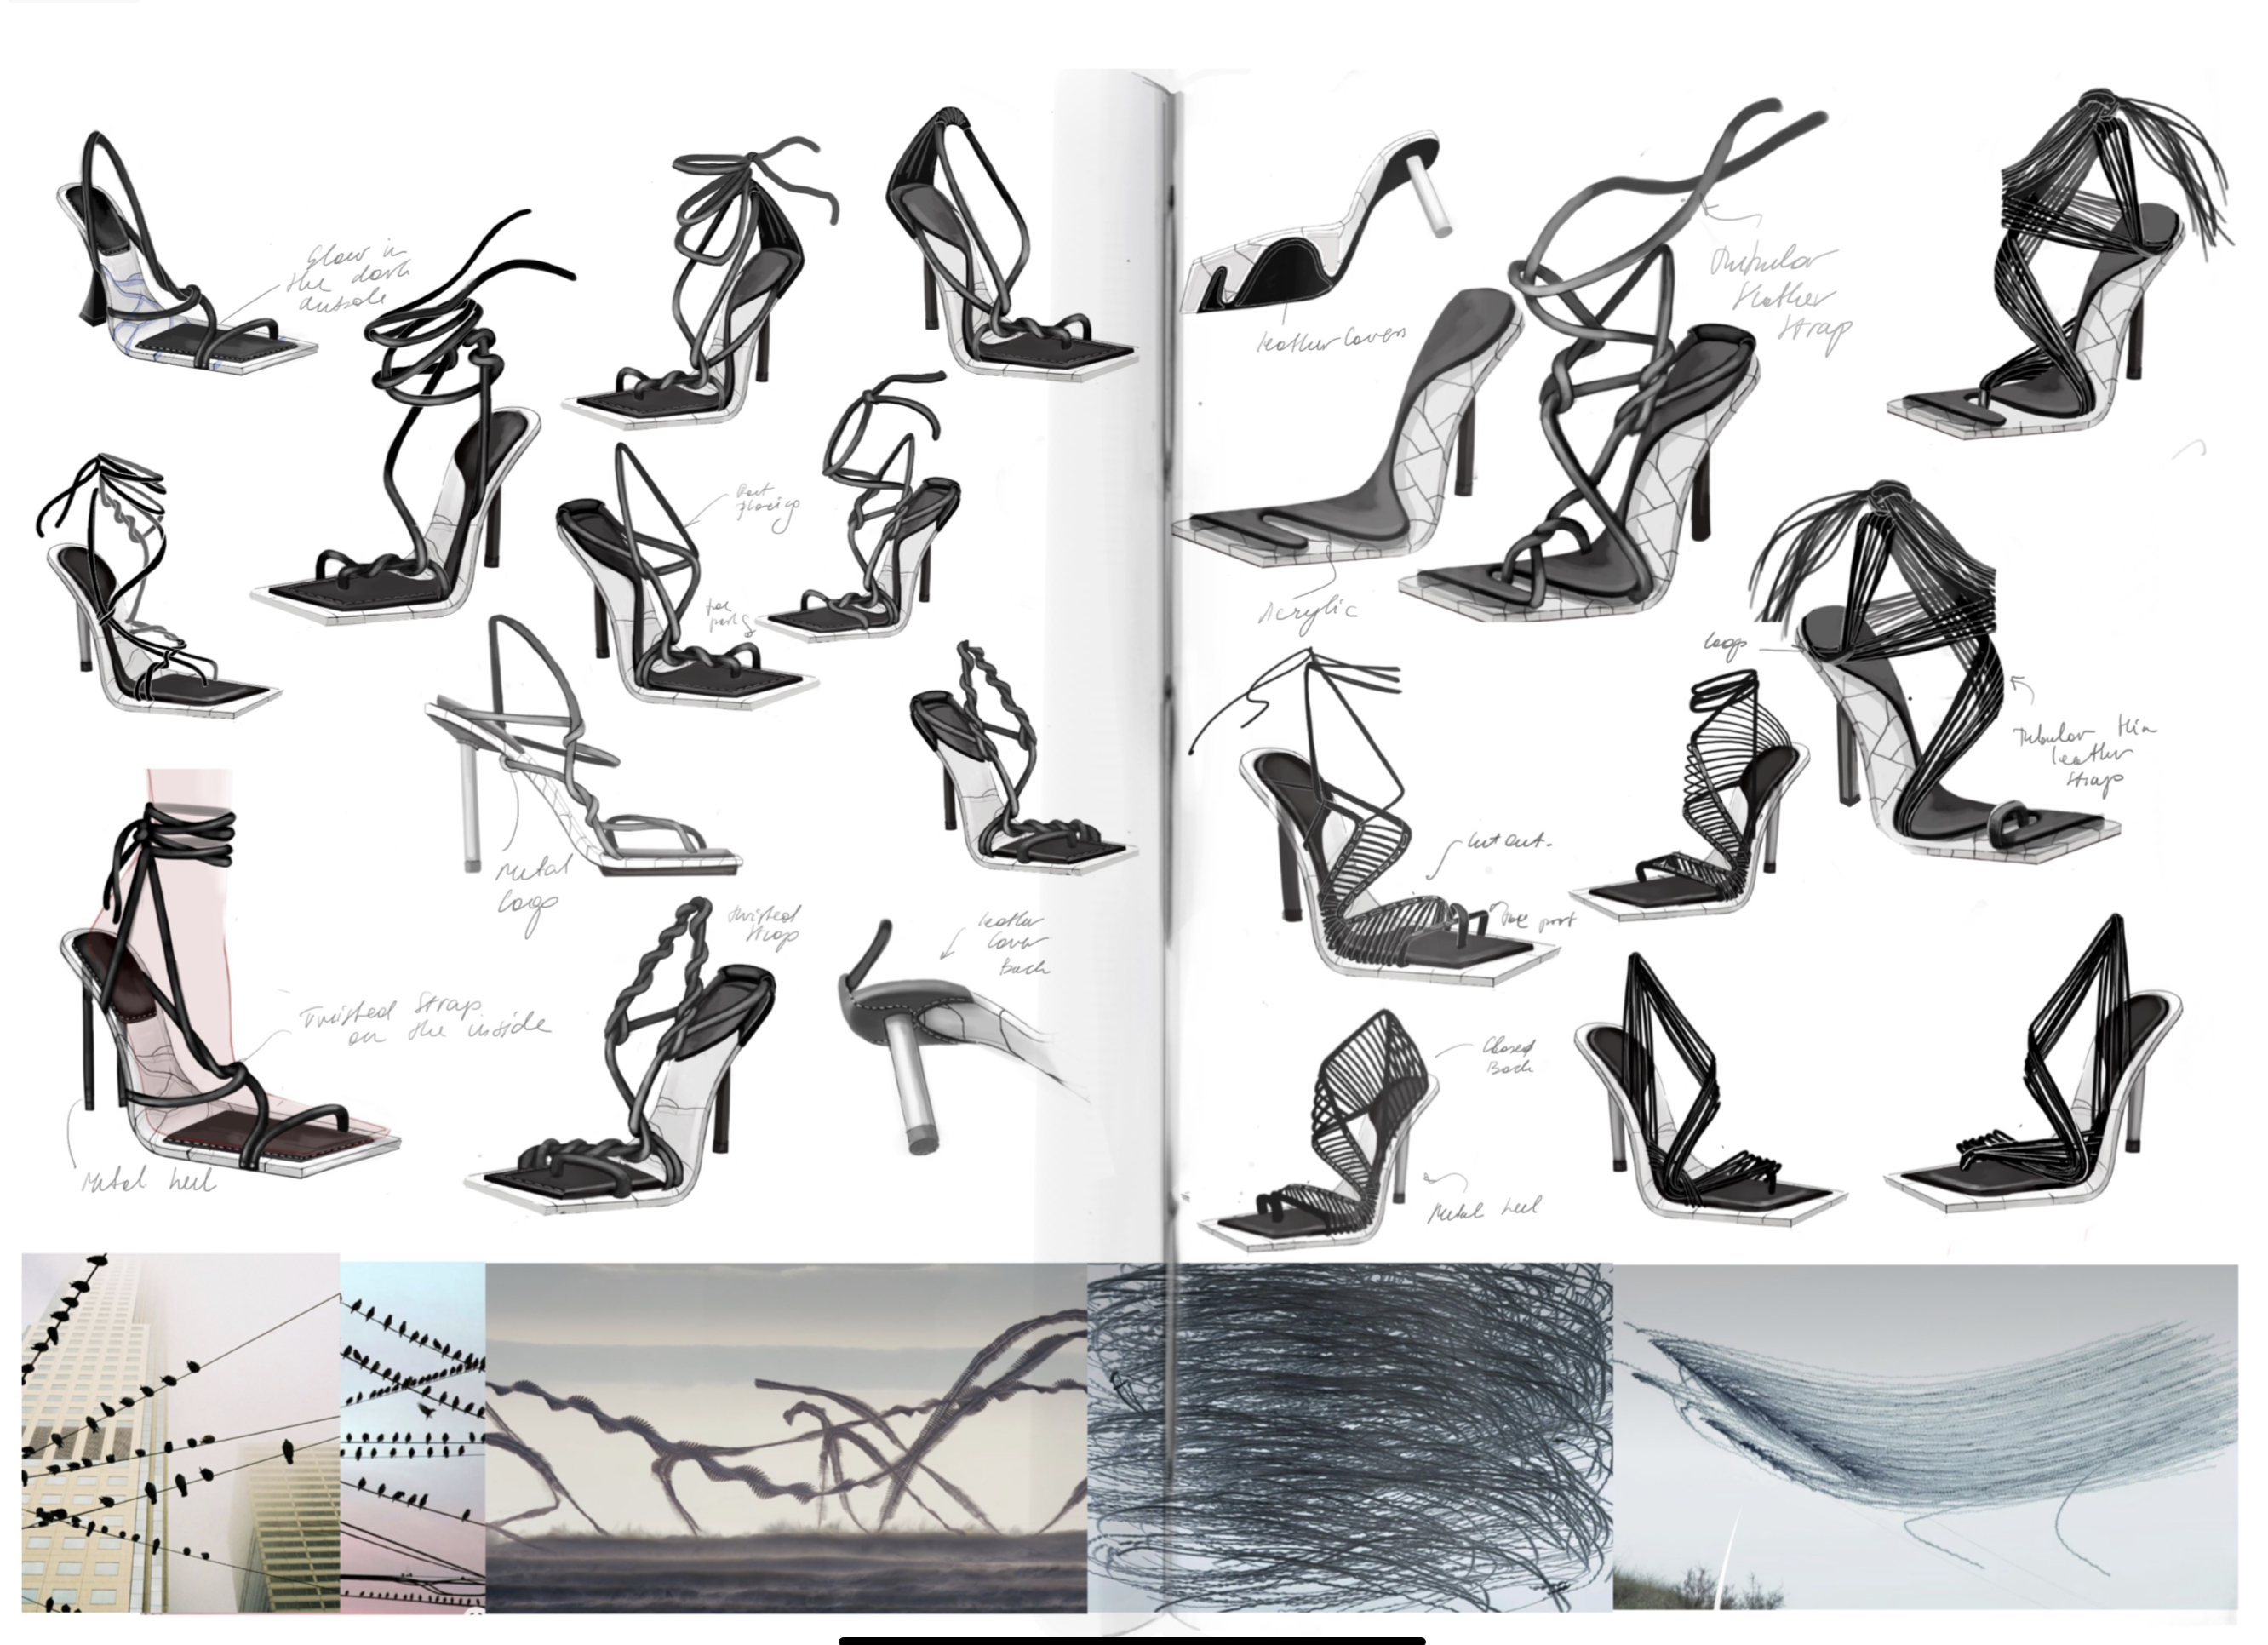 An assortment of heeled boots interspersed with pictures of birds.